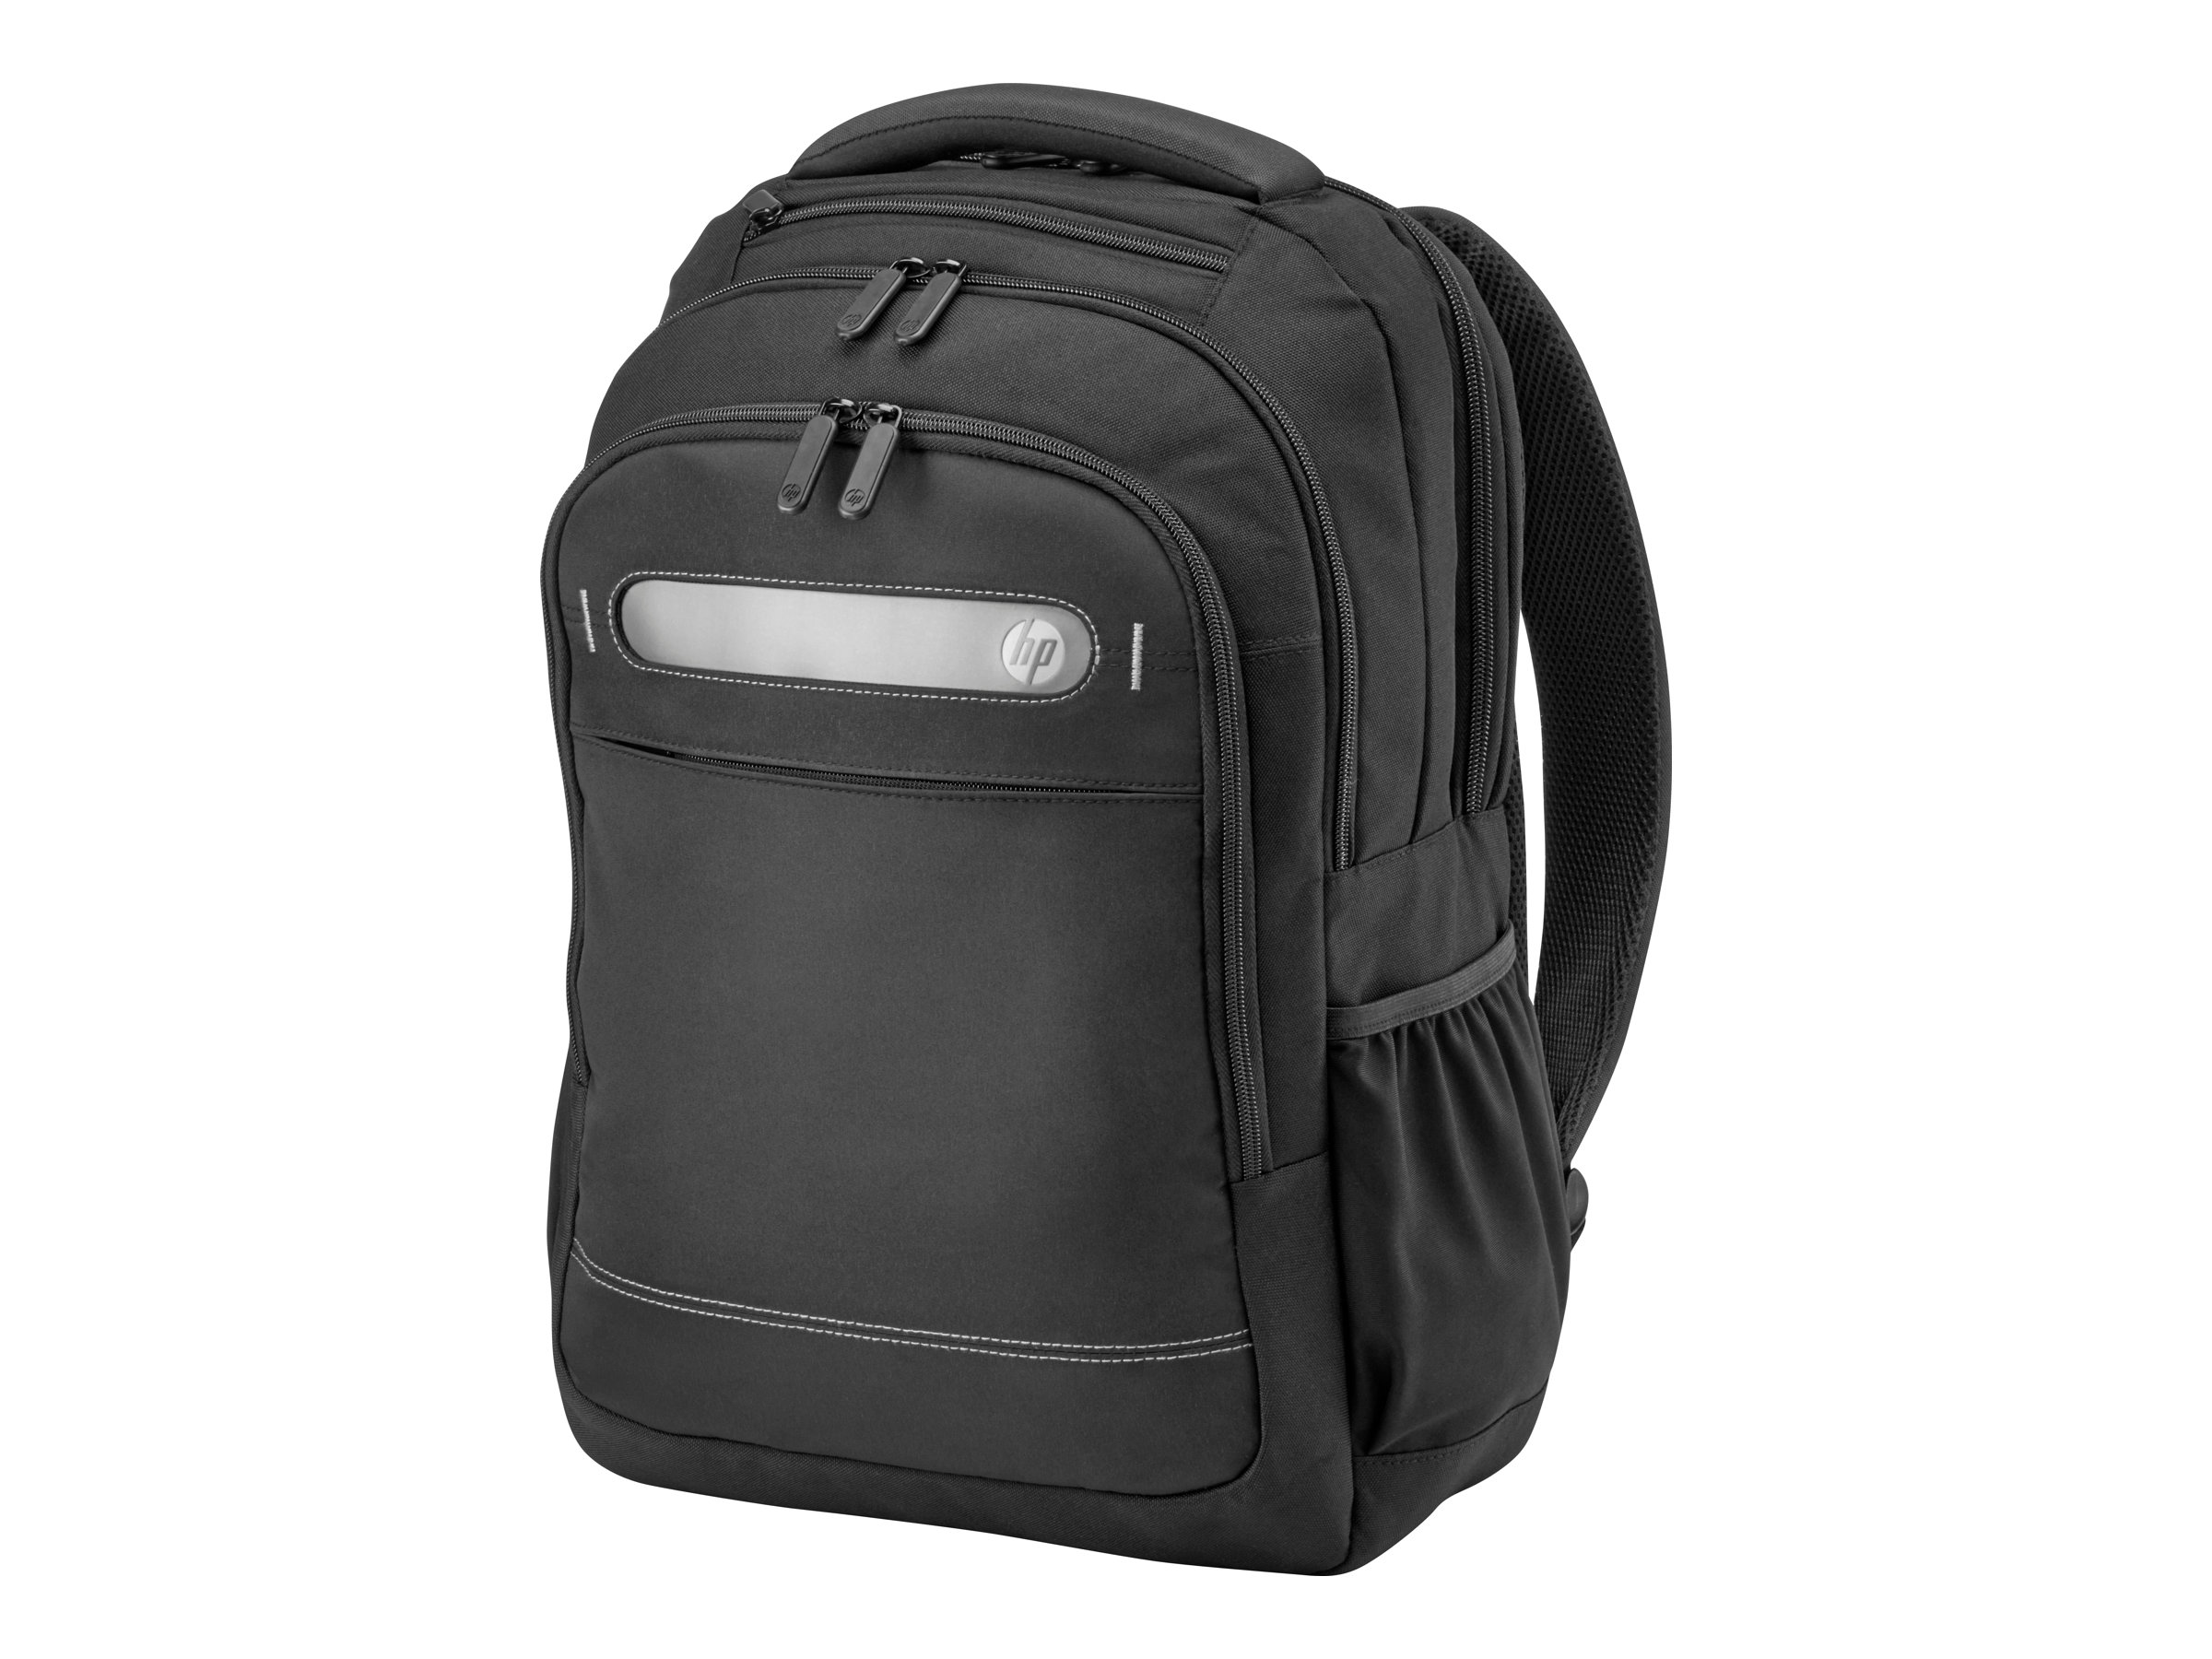 HP Business Backpack - Notebook-Rucksack - 43.9 cm (17.3